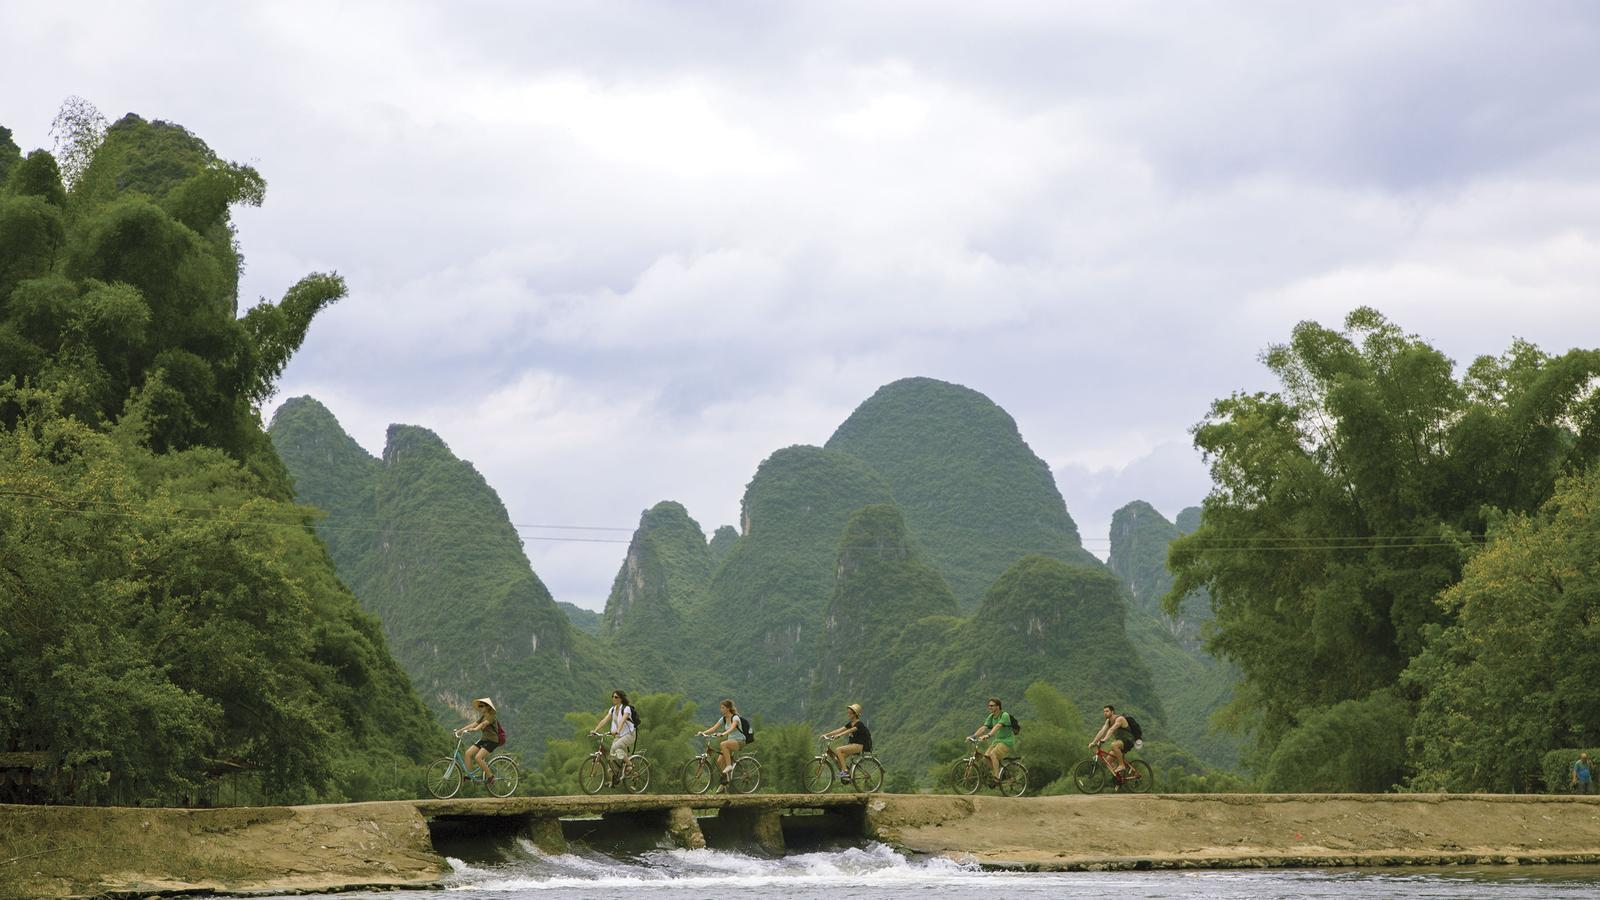 The group cycling through the countryside in China